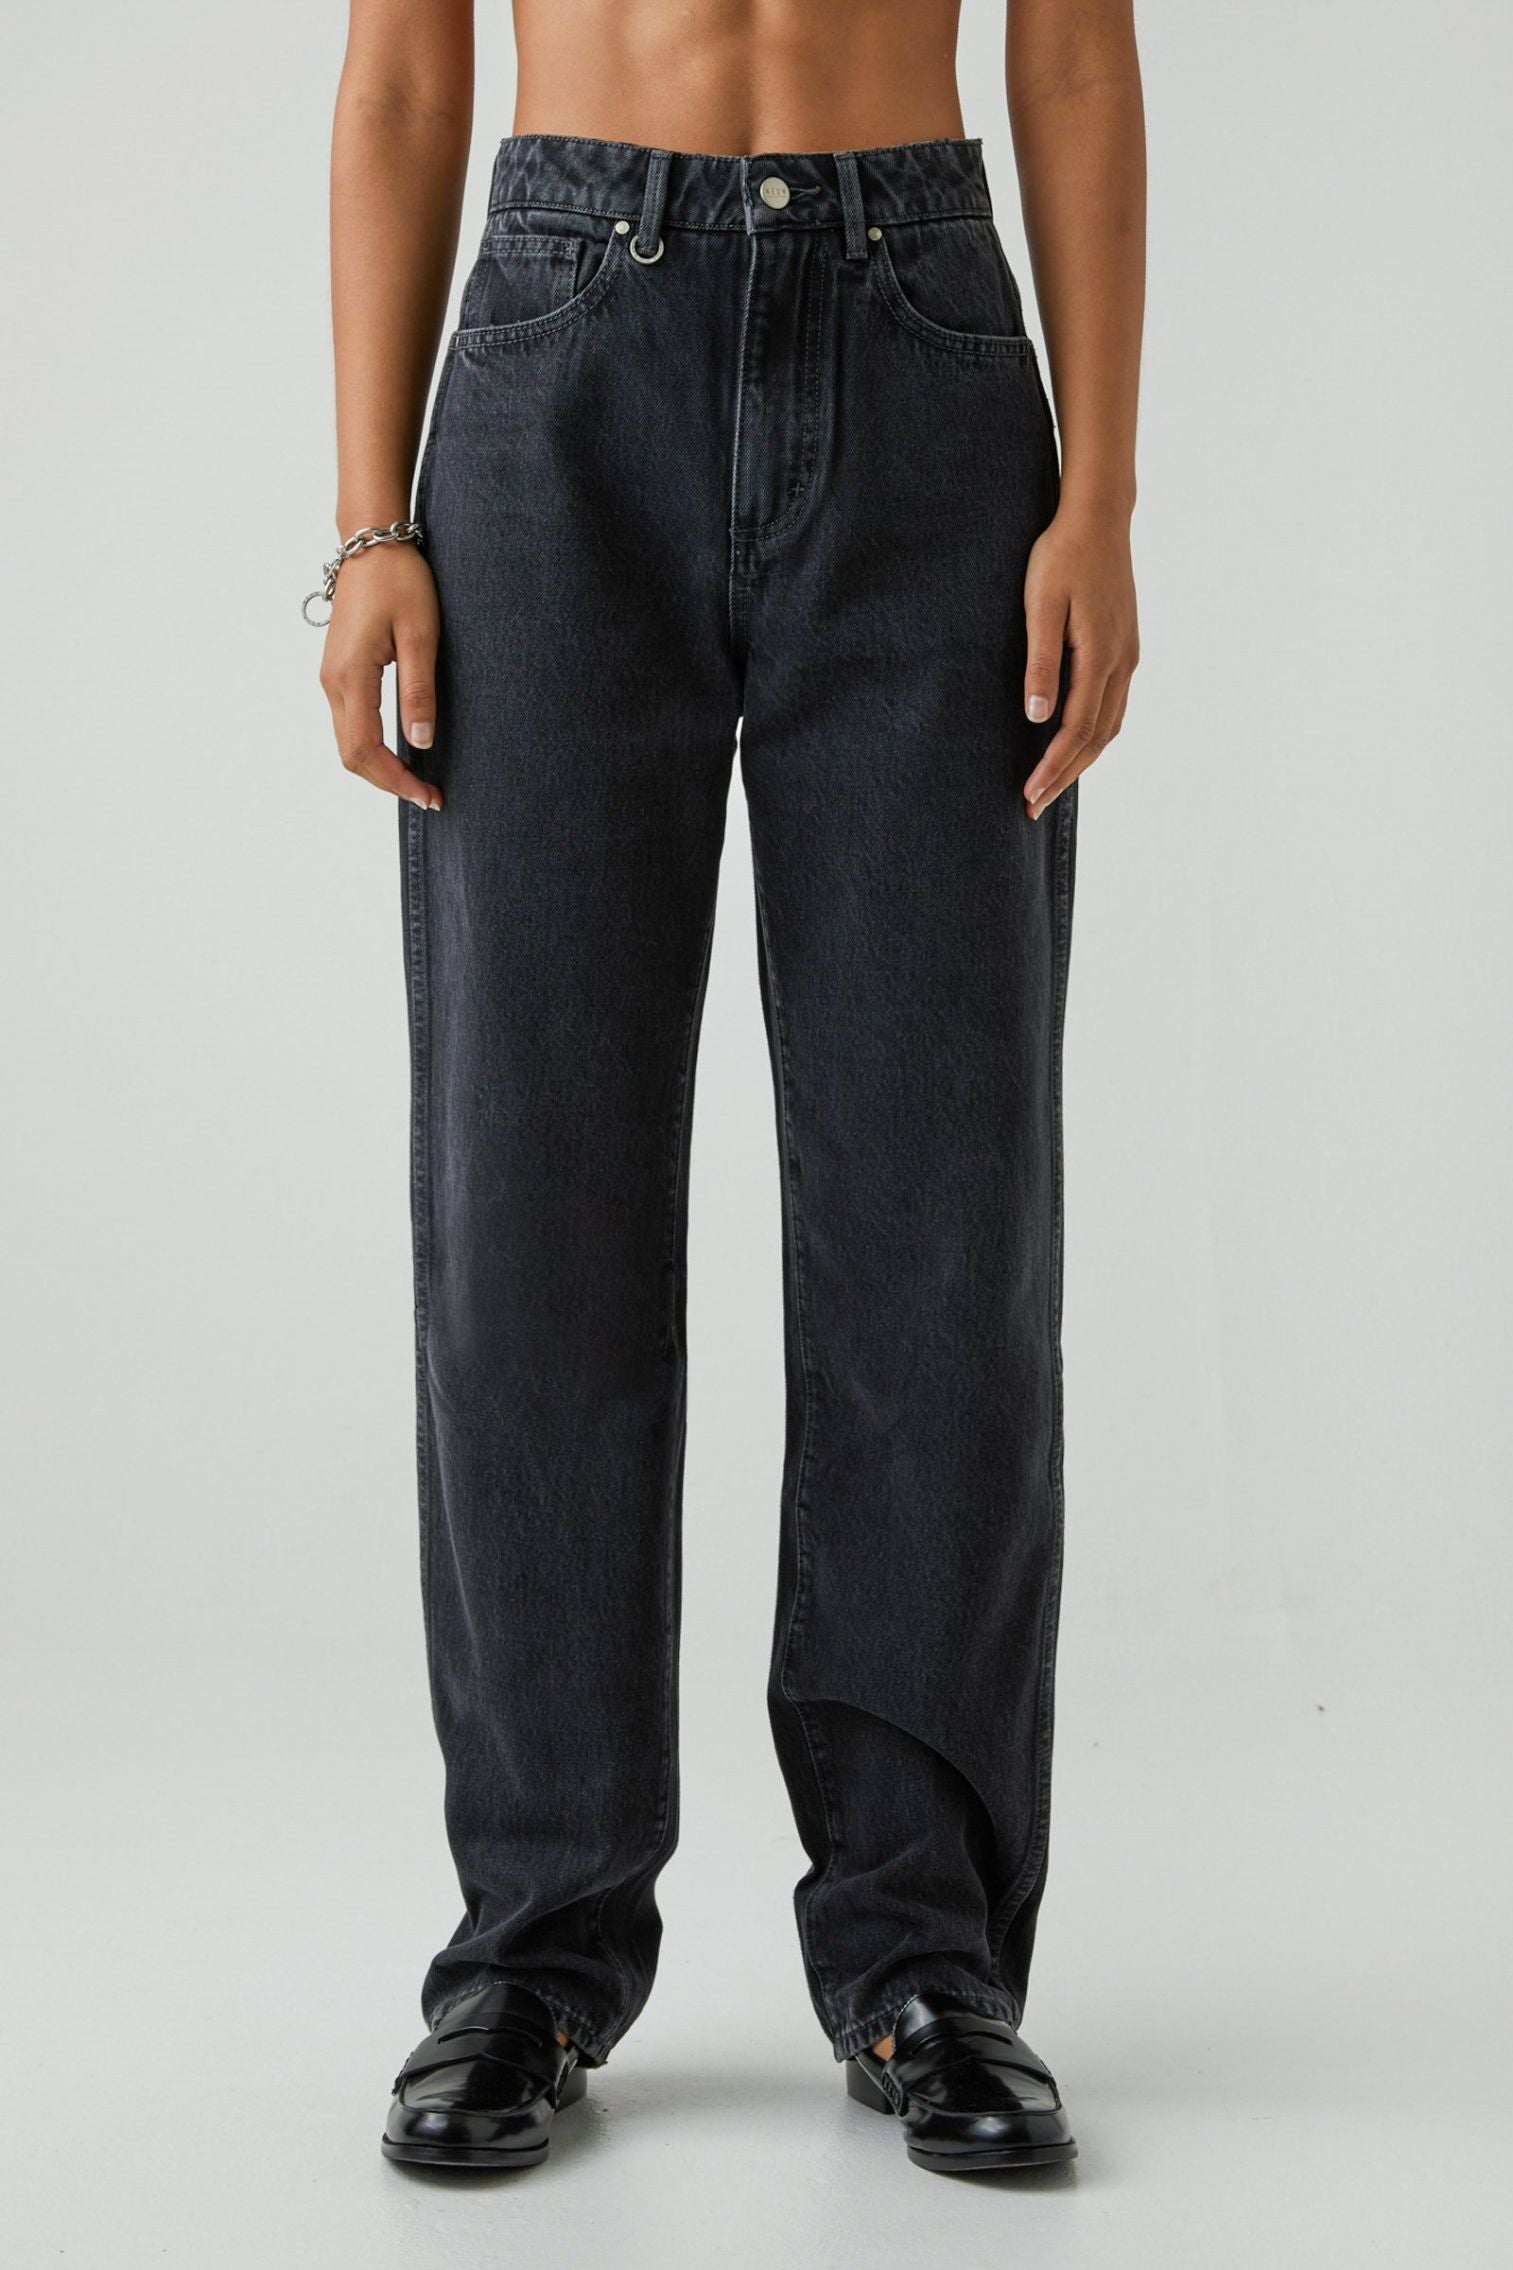 Sade Baggy Zero Washed Black